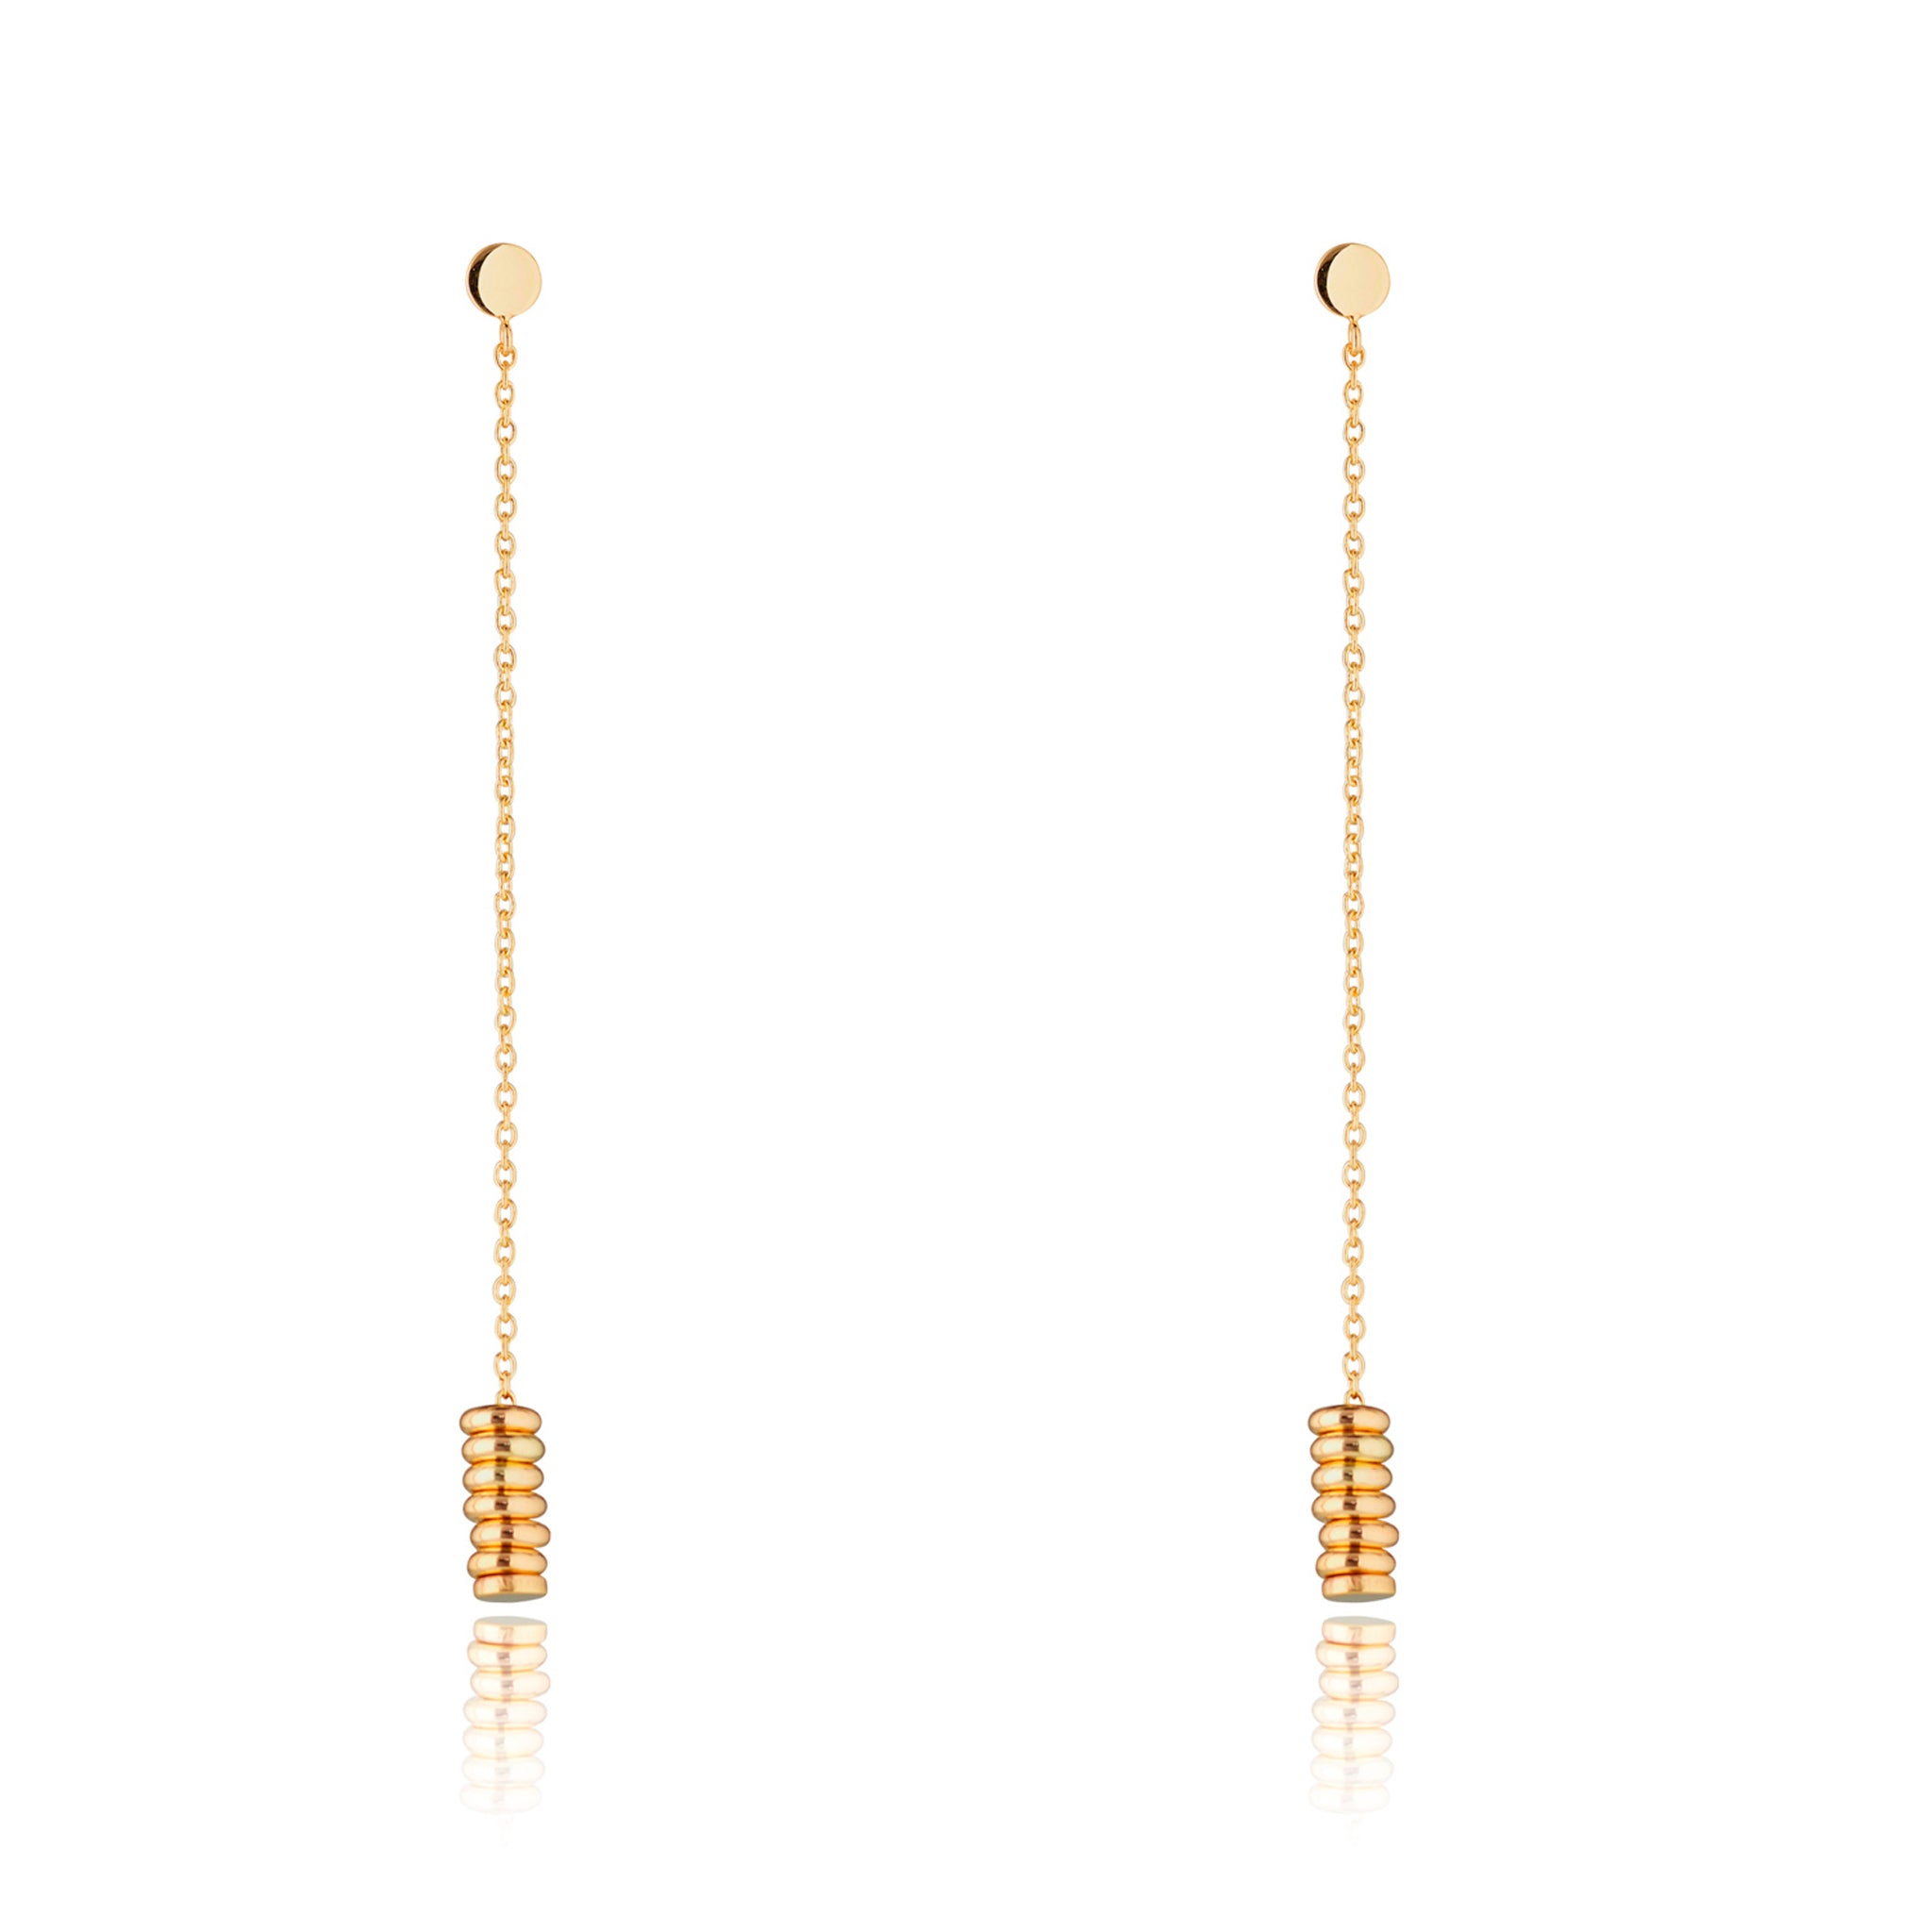 9kt Gold Chain Earrings with Multiple Circles - MoMuse Jewellery